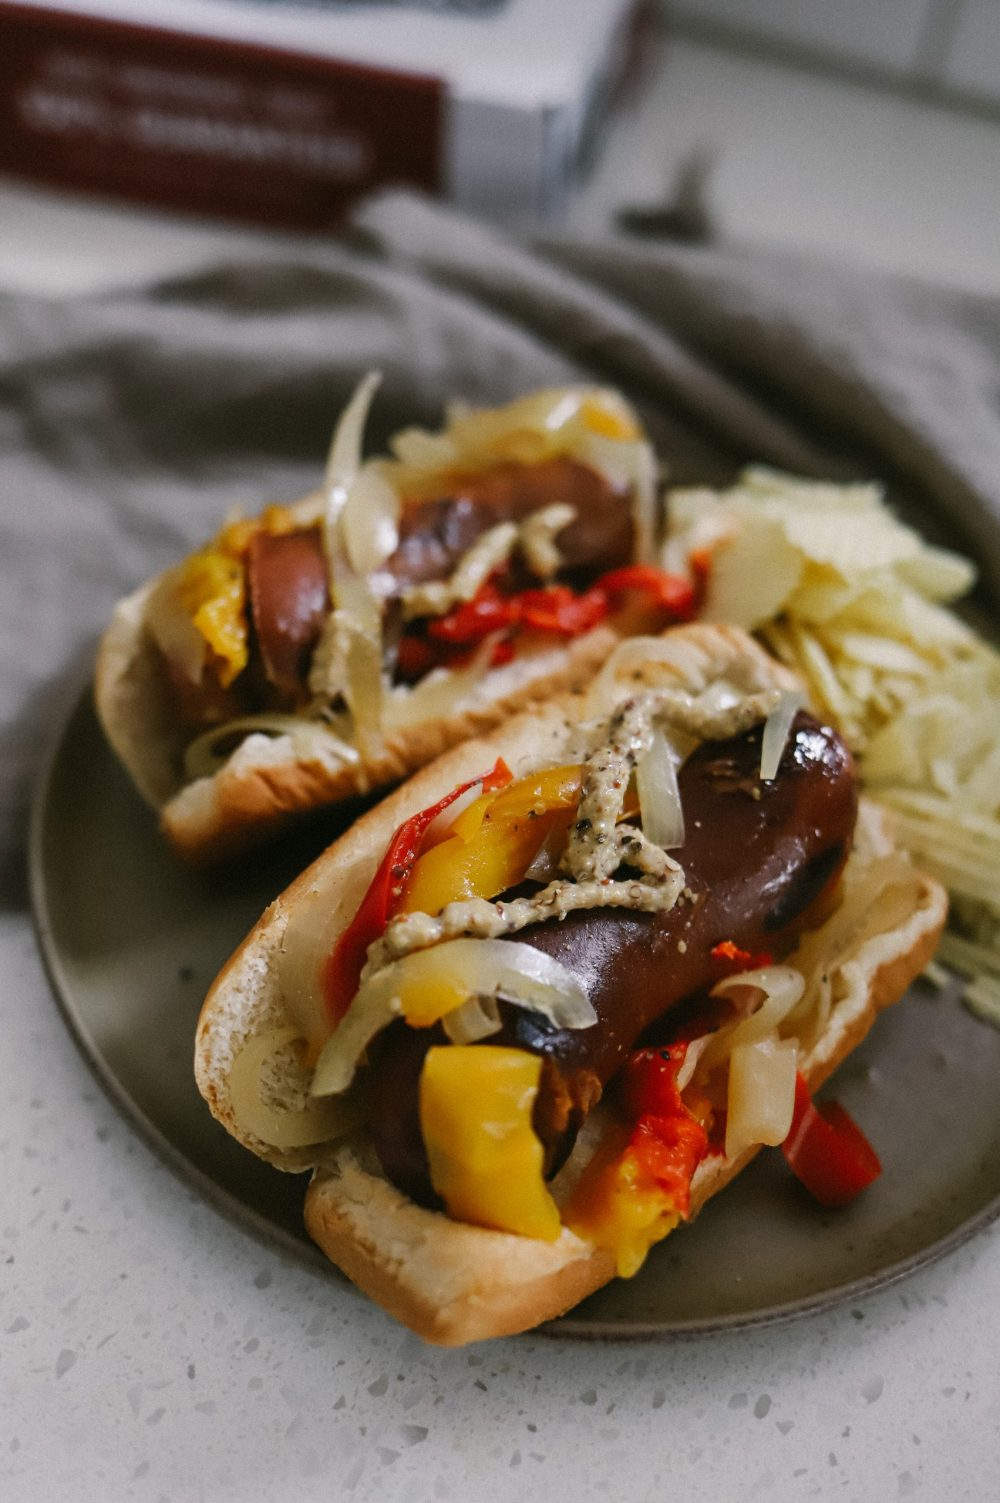 Crockpot Recipes for Large Families: How to Make Slow Cooker Beer Brats with Peppers and Onions